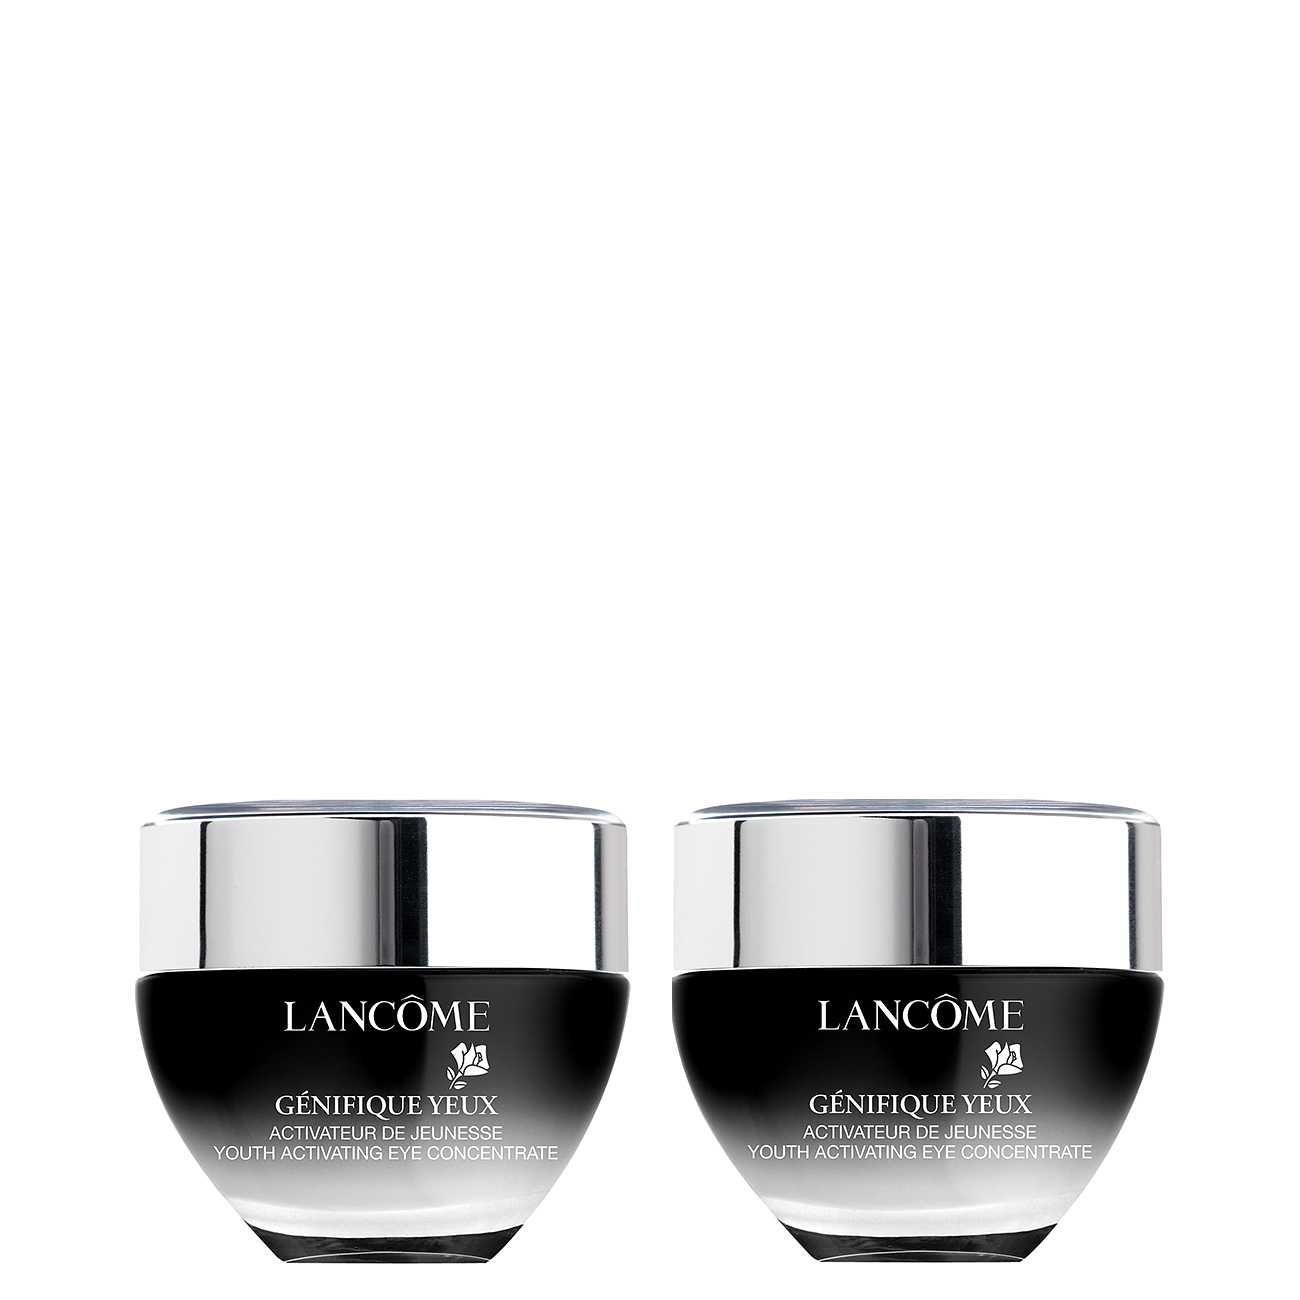 GENIFIQUE EYES DUO SET 30 ML